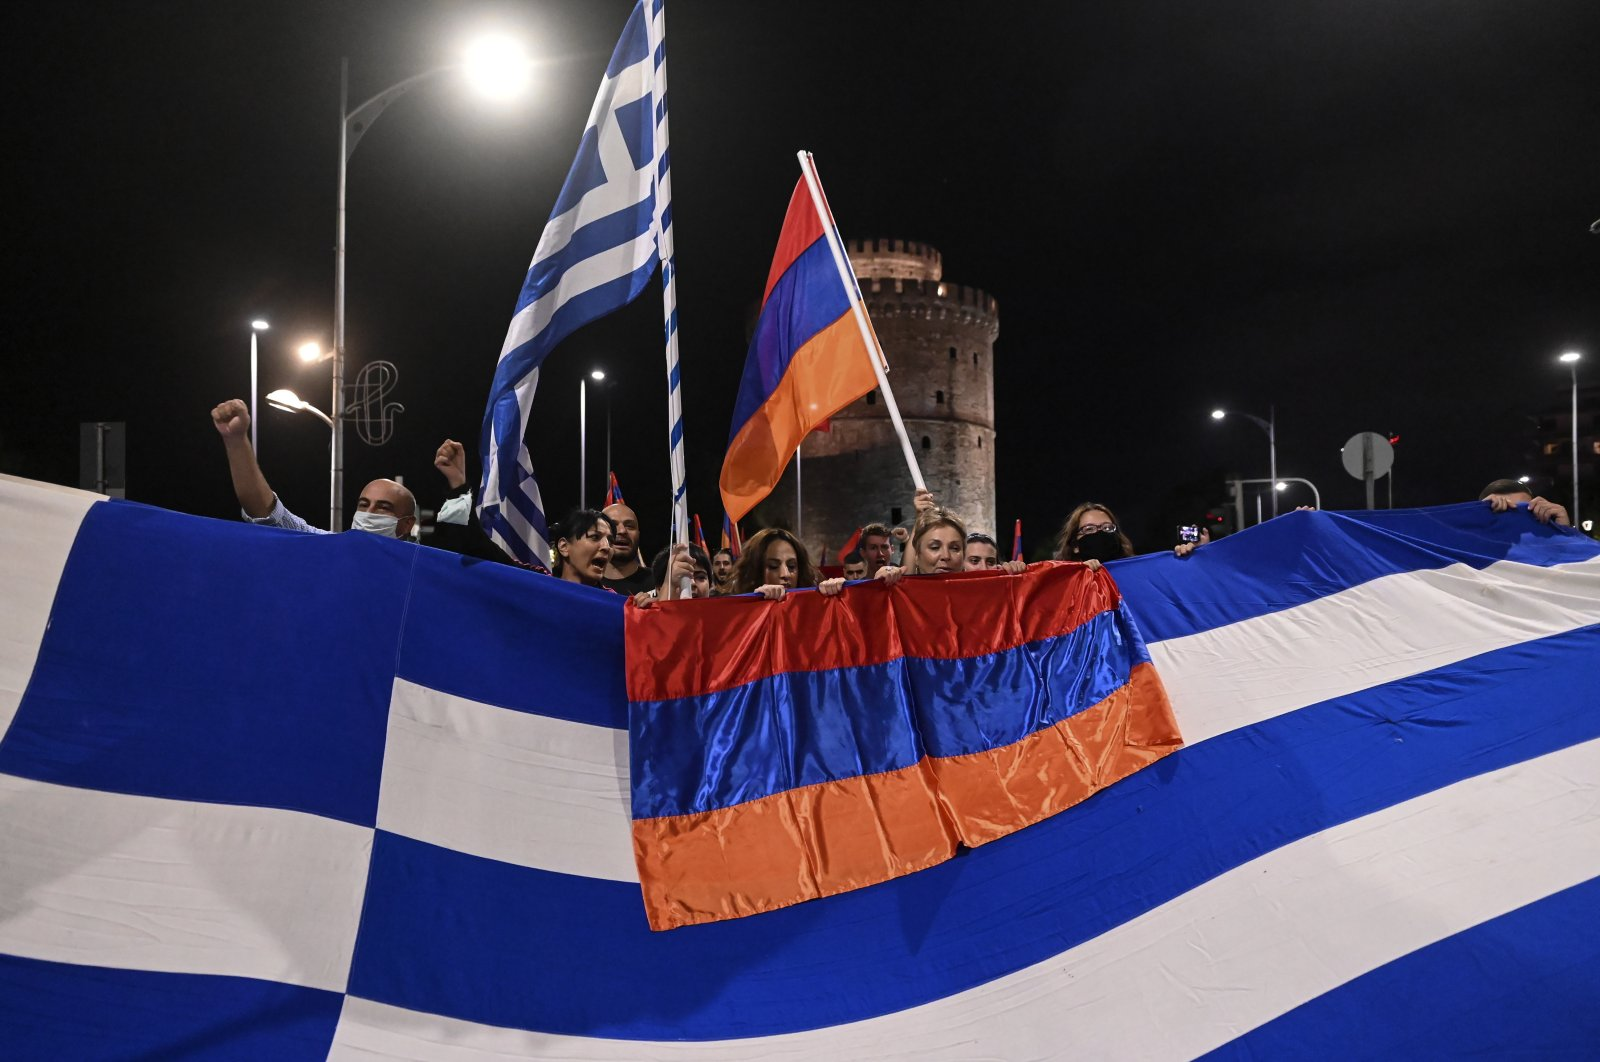 Pro-Armenian protesters stand behind a Greek and an Armenian flag during a demonstration in support of Armenia, in the northern city of Thessaloniki, Greece, Oct. 3, 2020. (AP Photo)